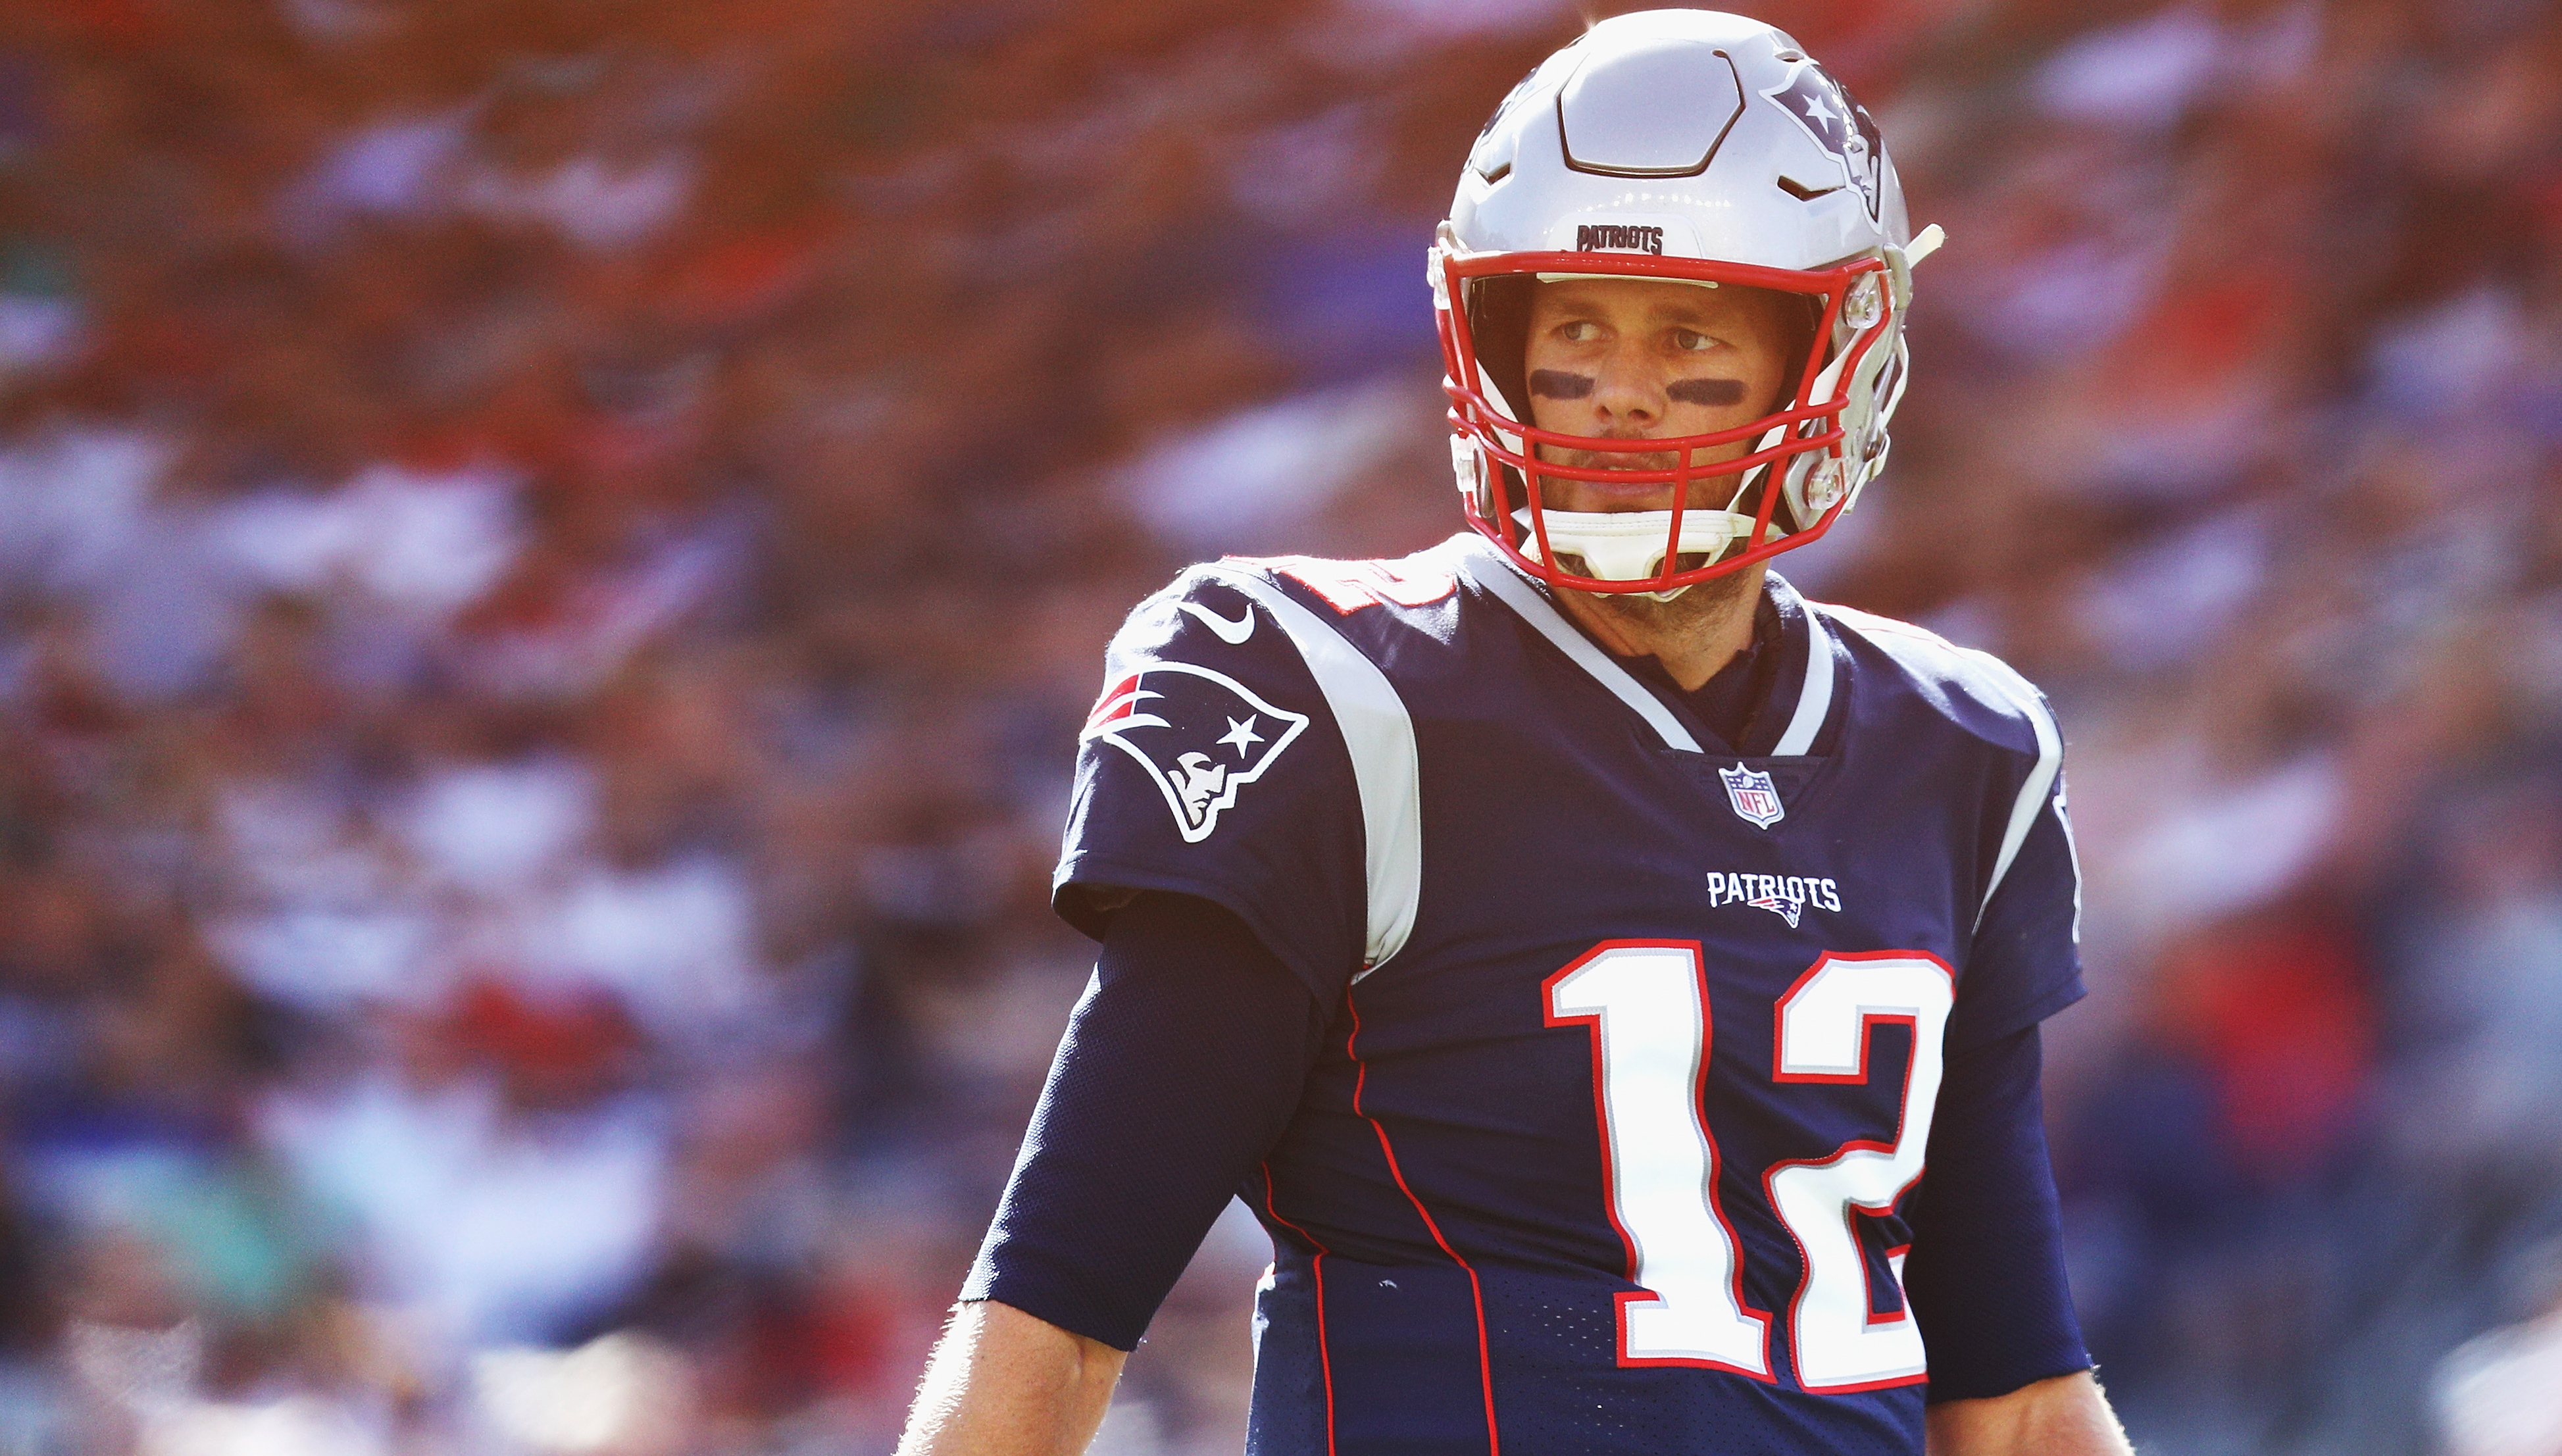 Nfl News Tom Bradys New England Patriots Beat Miami Dolphins To Andrew Smith Regular 5 Pockets Abu 34 Brady And The Emphatically Answered Their Doubters On Sunday As Five Time Super Bowl Champions Avoided A Third Straight Defeat